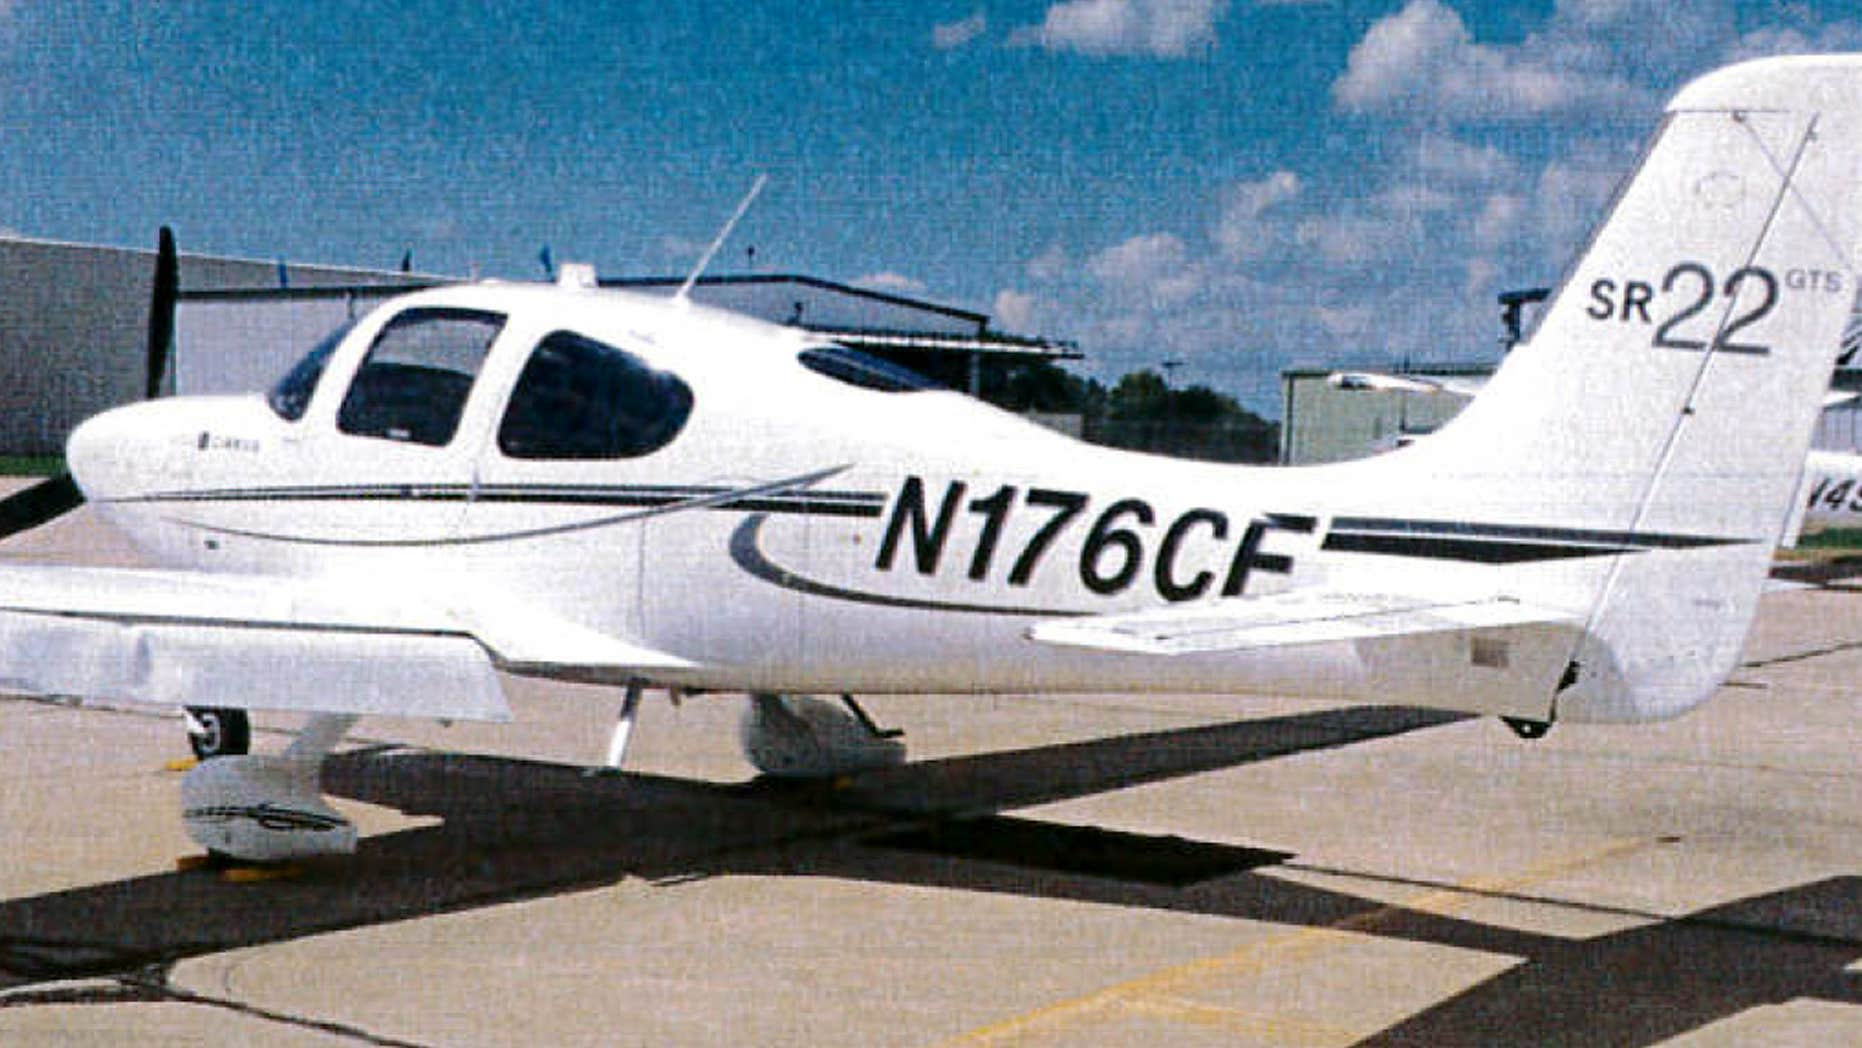 This undated photo provided by the Bloomington Normal Airport Authority shows a damaged wing of a Cirrus SR22 single engine plane at the Central Illinois Regional Airport in Bloomington, Ill.